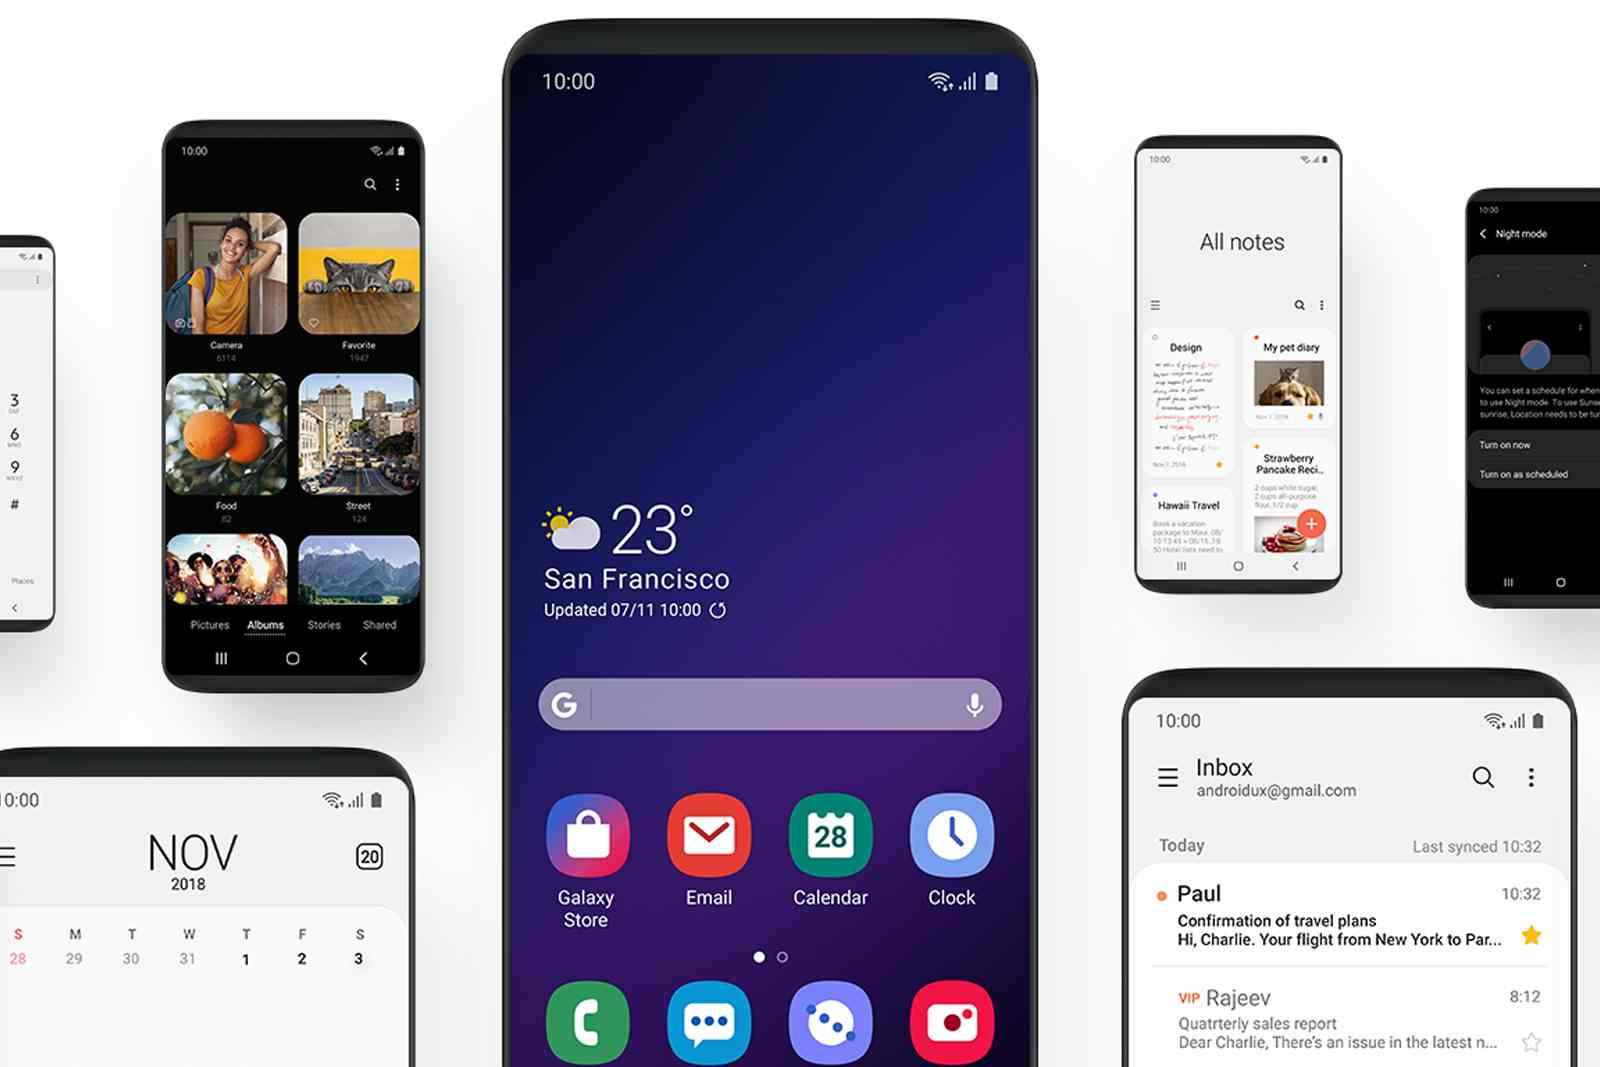 Samsung One Ui Home Update Rolling Out Fixing Wallpaper Orientation And Other Issue Digistatement